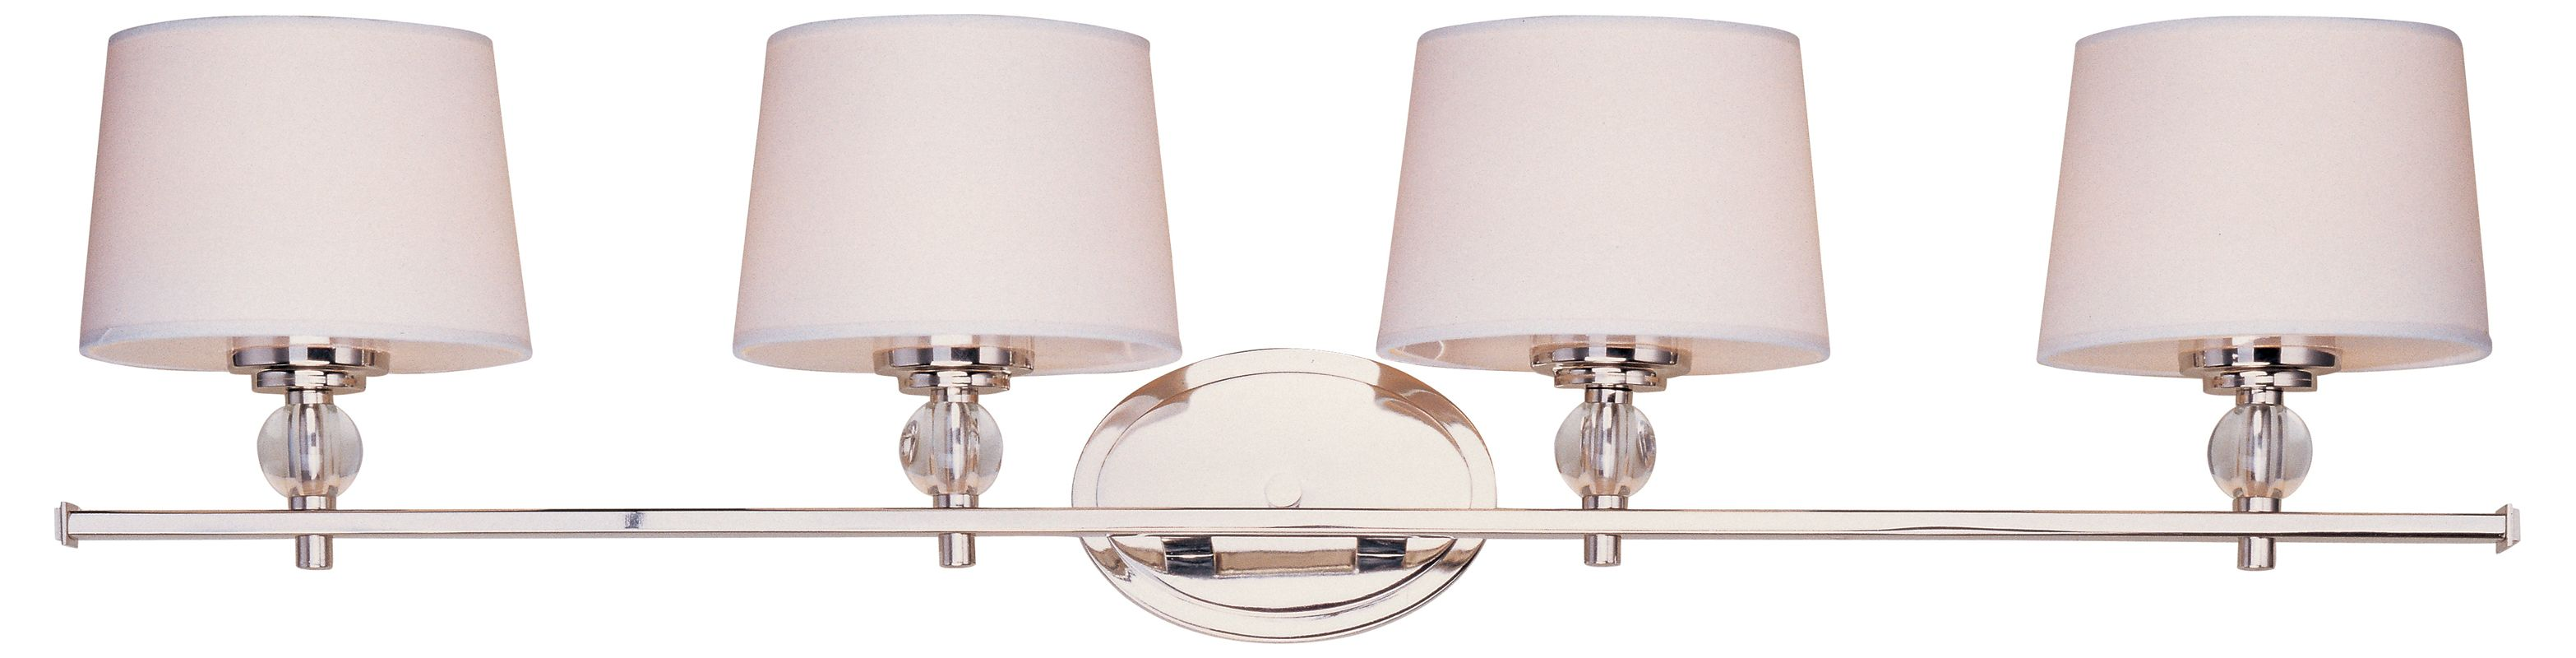 Maxim 12764wtoi Oil Rubbed Bronze White Fabric Shade 4 Light Wide Bathroom Fixture From